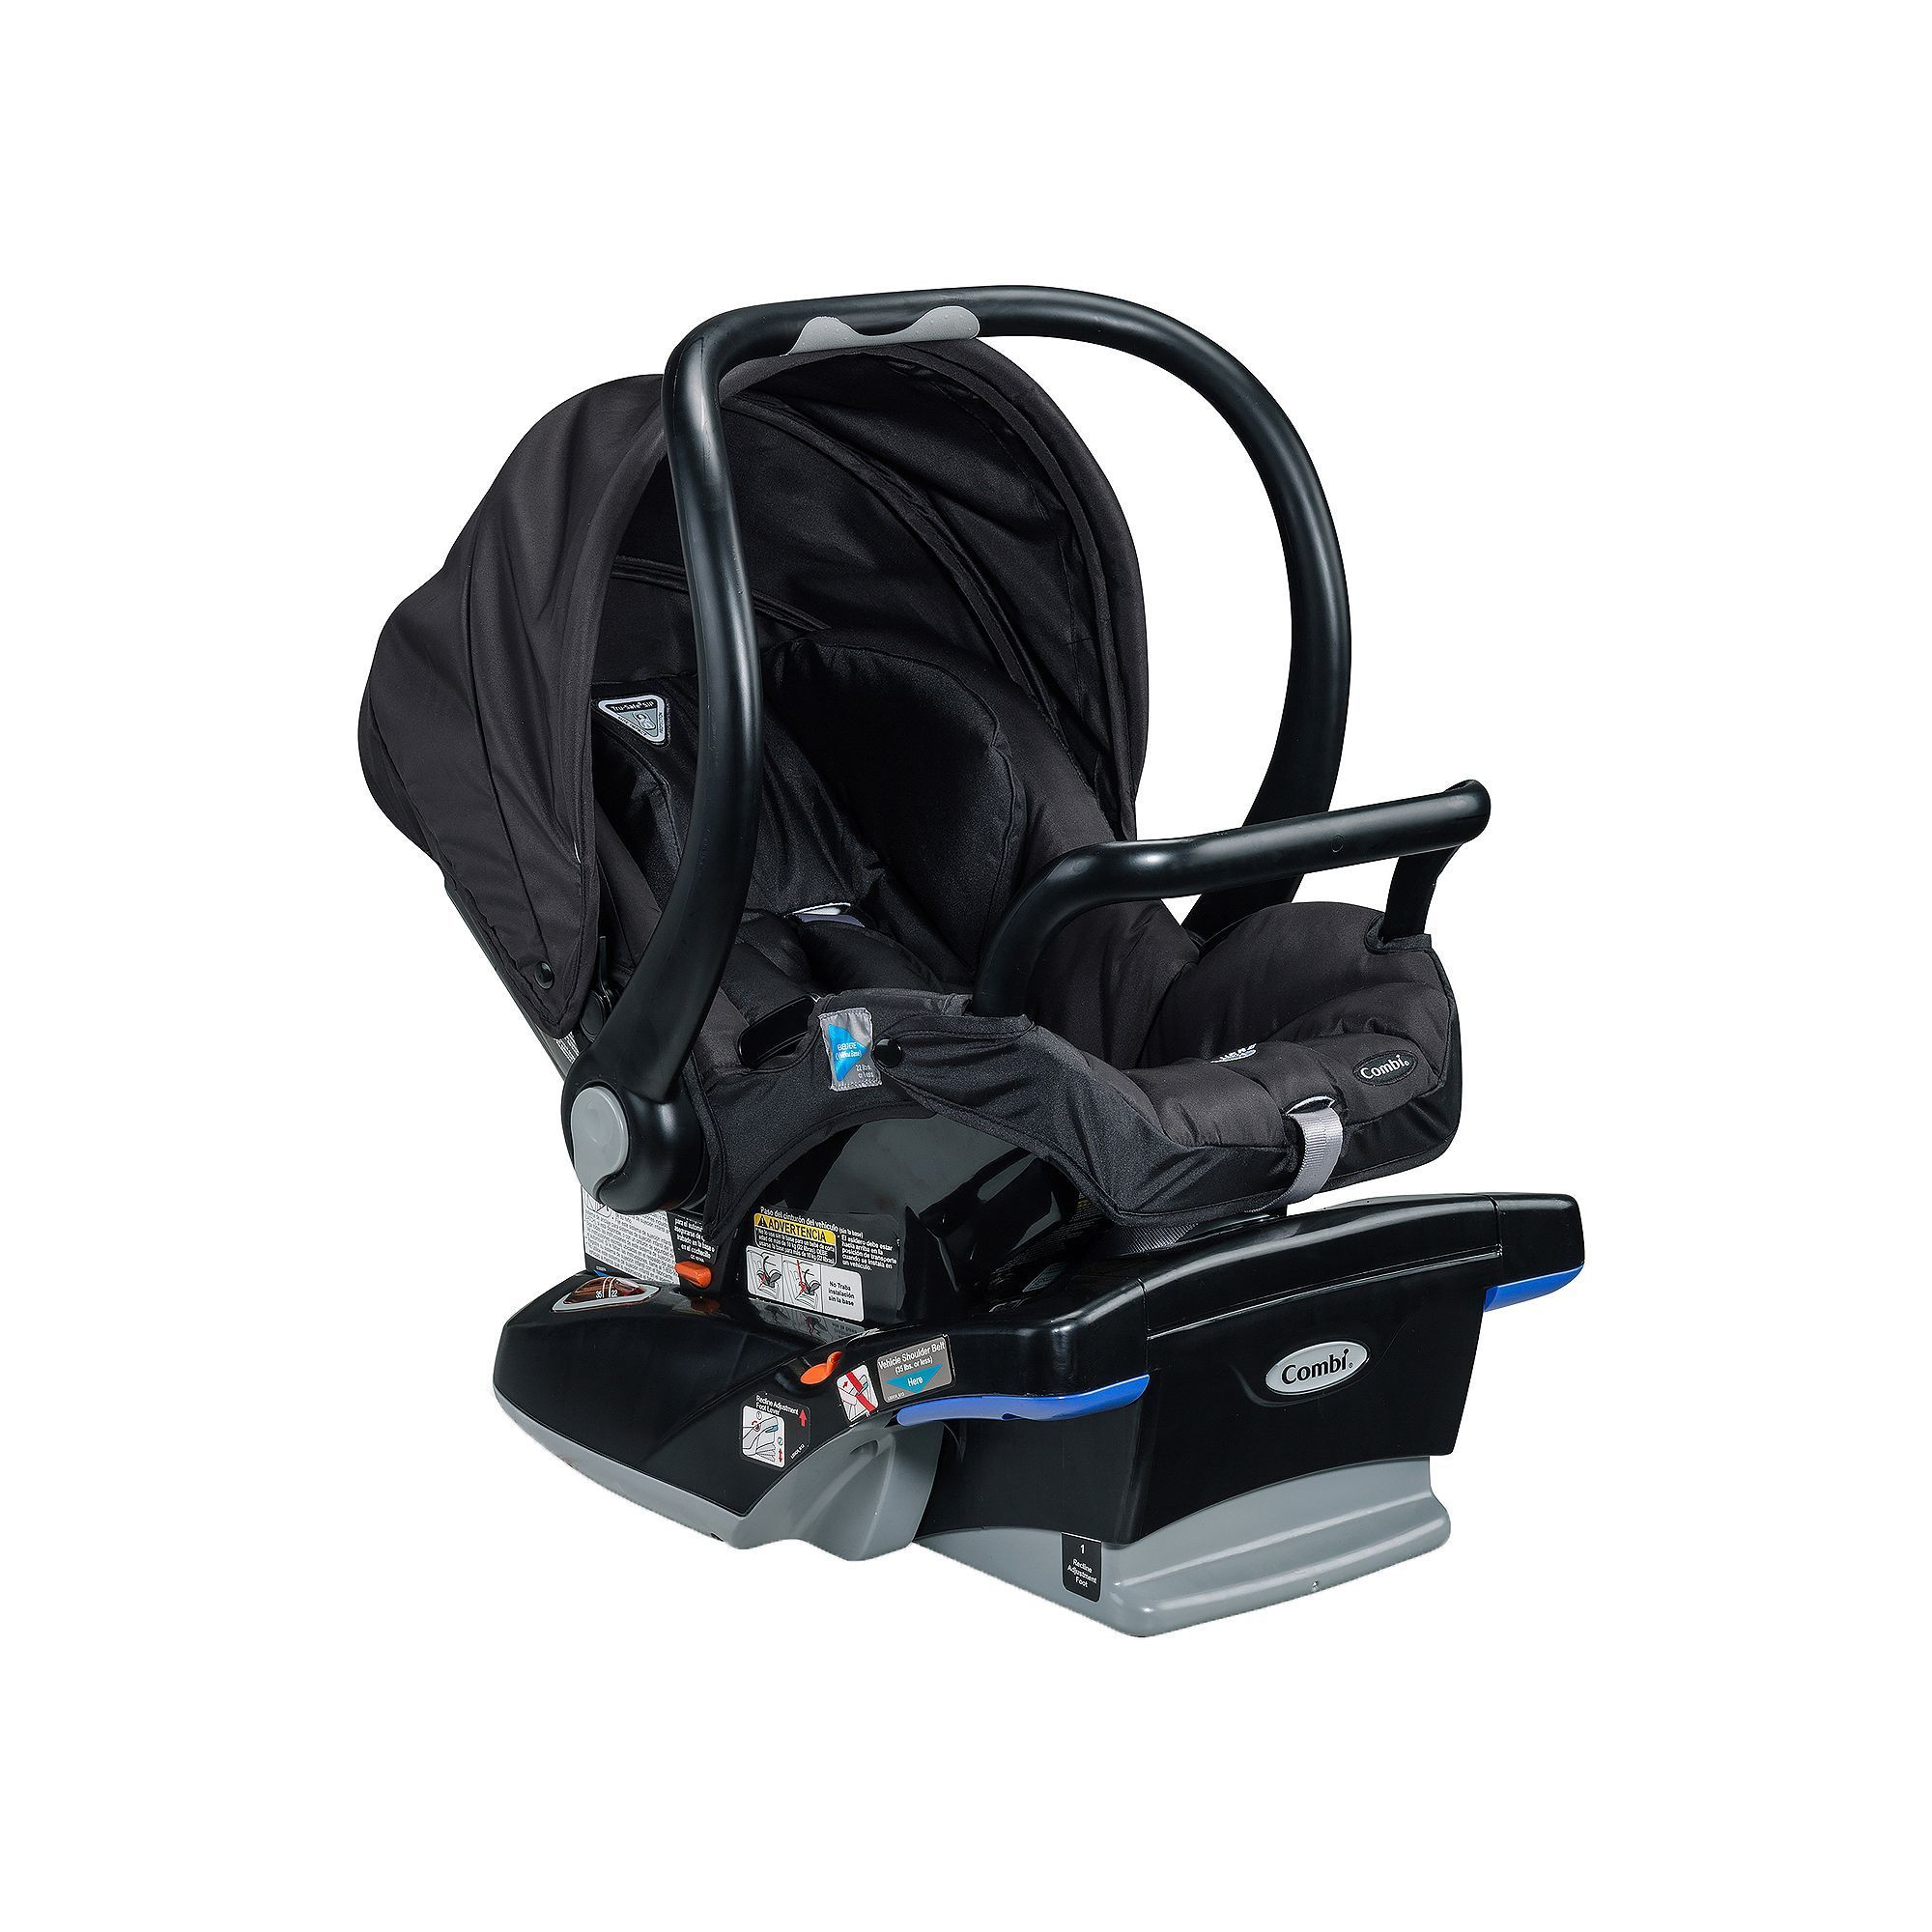 db81a825daa7 Combi Shuttle Infant Car Seat